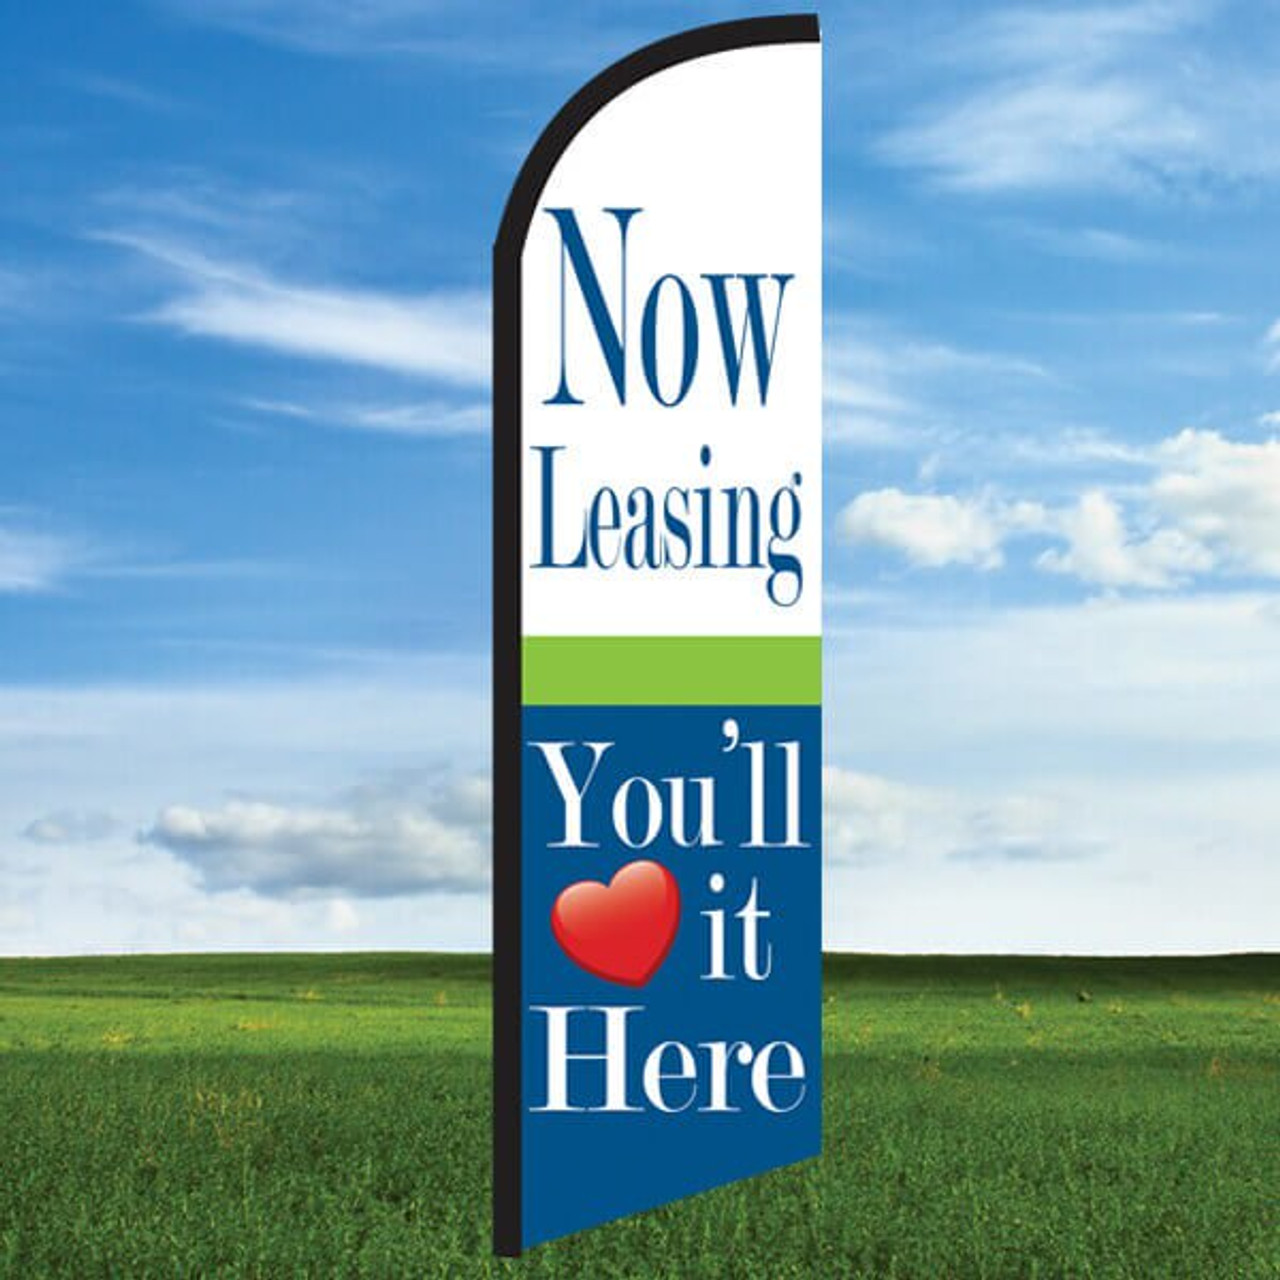 Cheerful: Now Leasing/You'll Love it Here- Windleasers 24/7 Widebody Flag